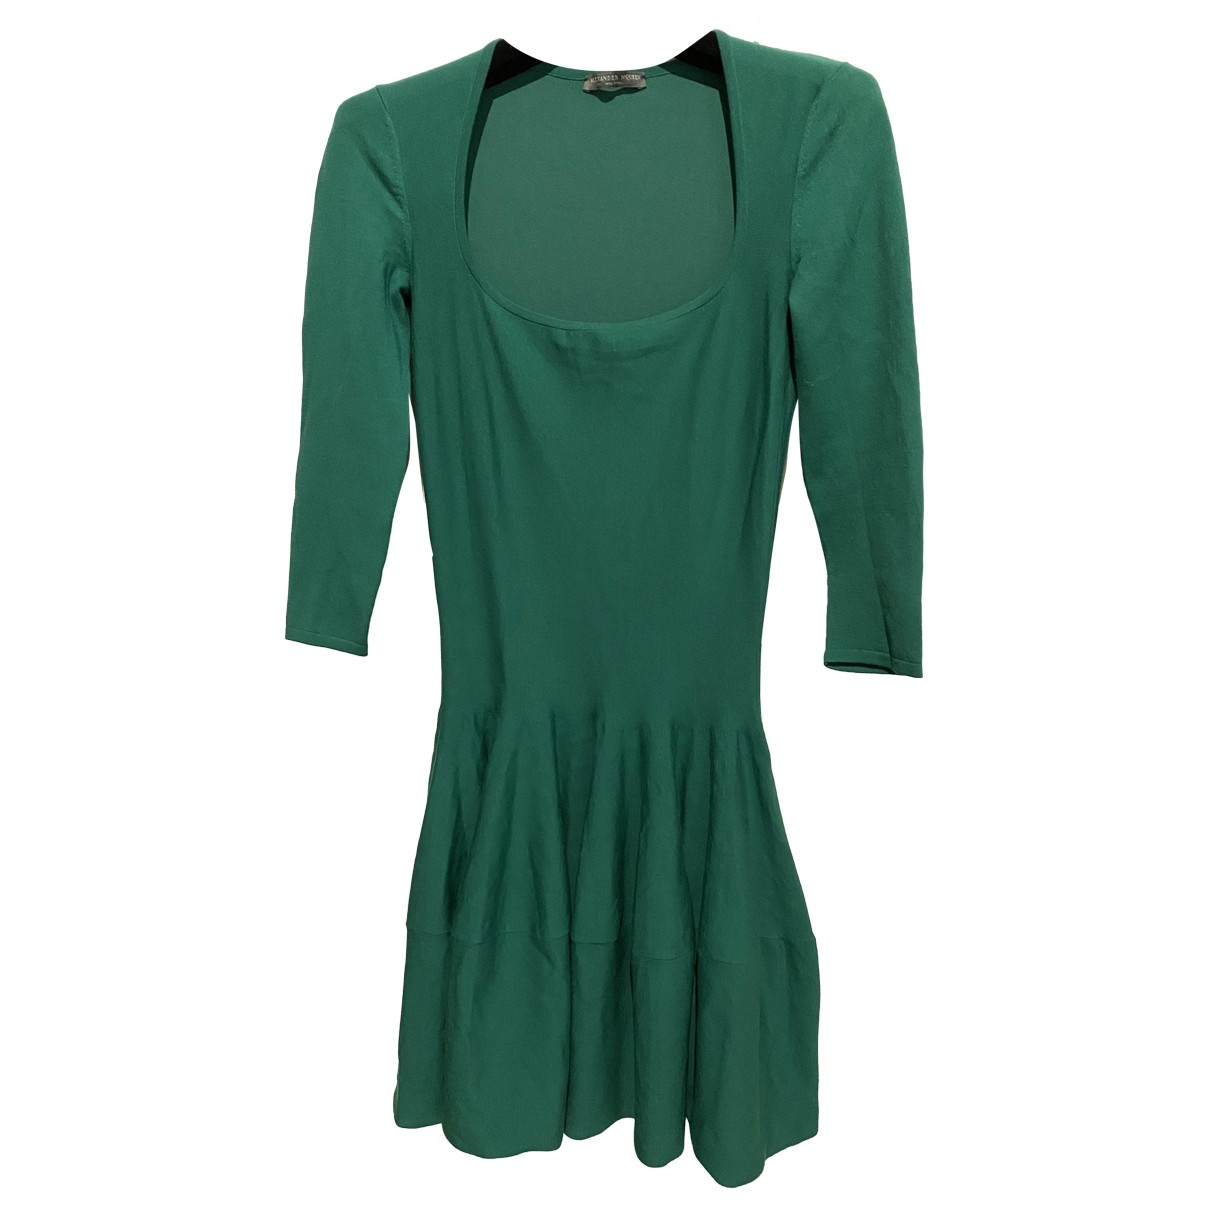 Alexander Mcqueen \N Green Wool dress for Women XS International